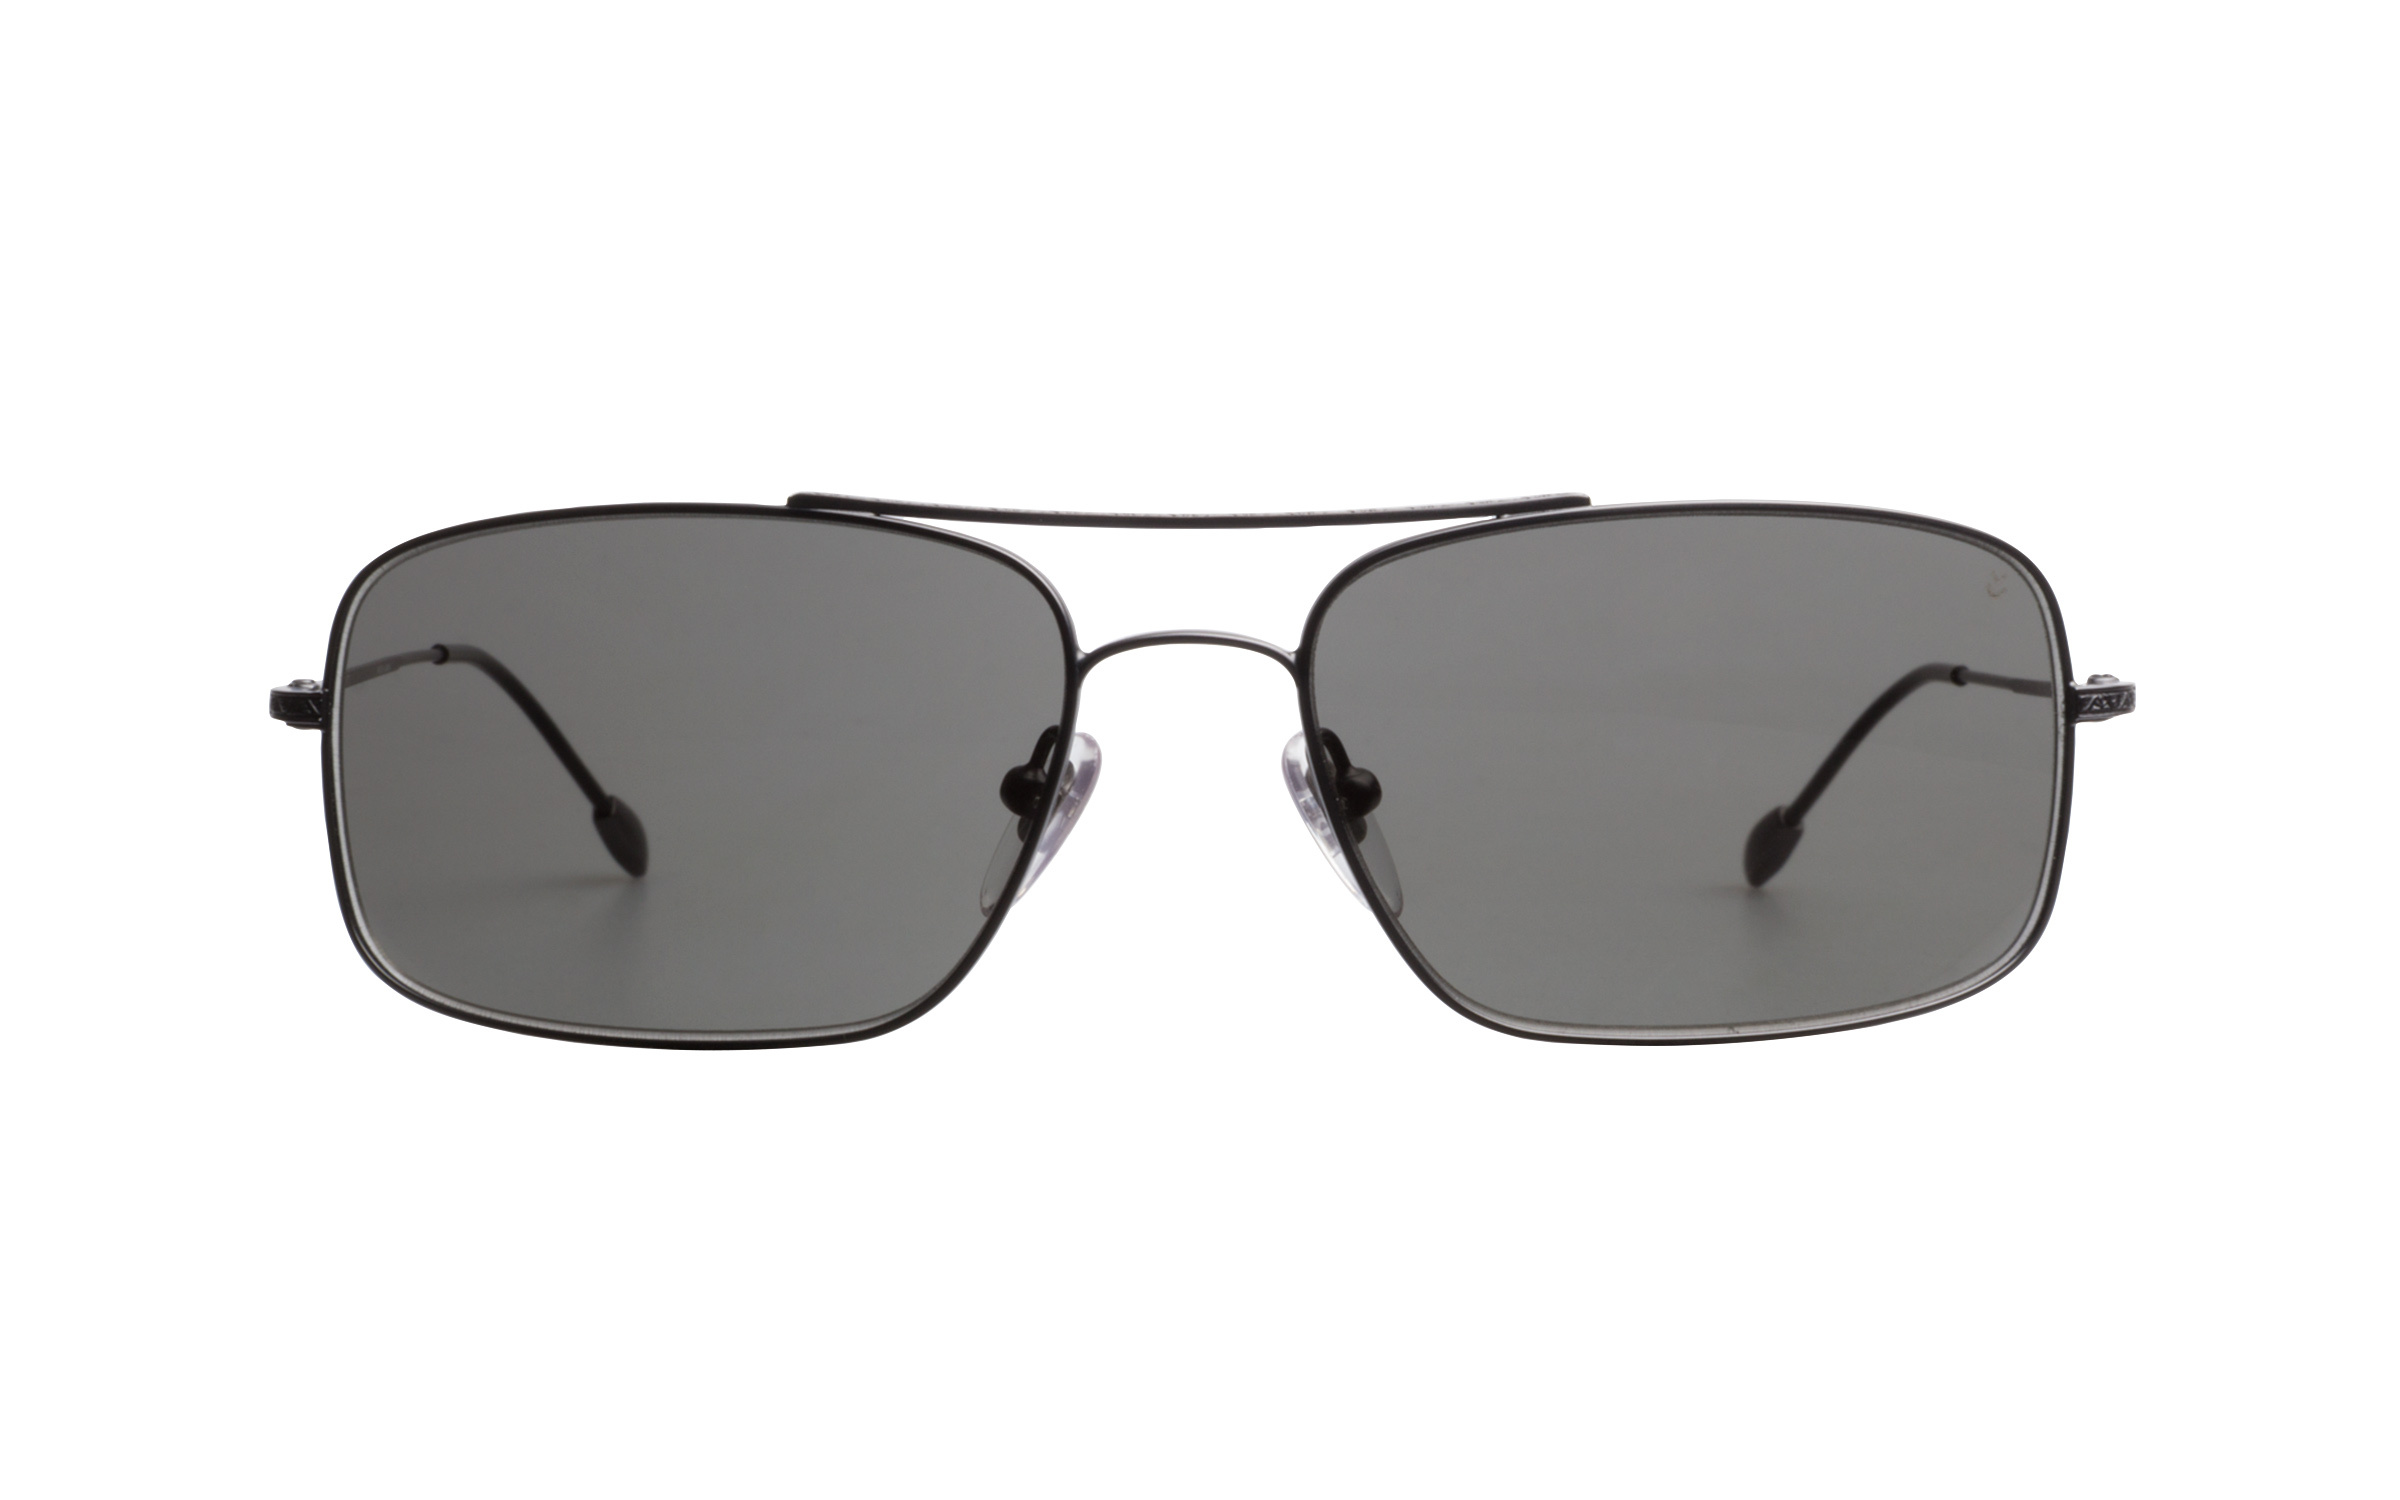 John_Varvatos_Sunglasses_Aviator_Grey_Online_Coastal